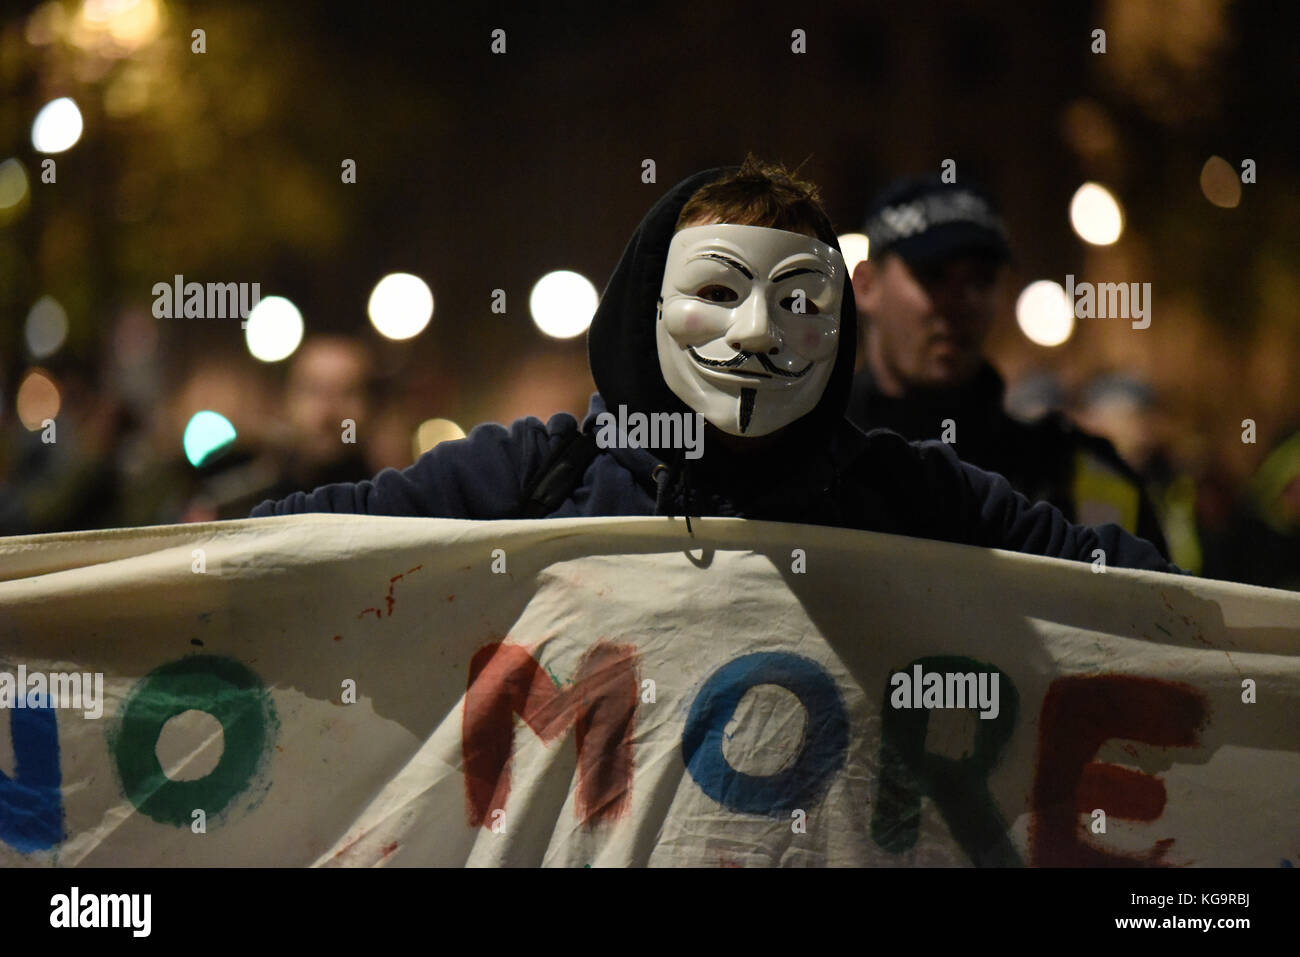 million-mask-march-london-by-anonymous-for-the-voiceless-activists-KG9RBJ.jpg